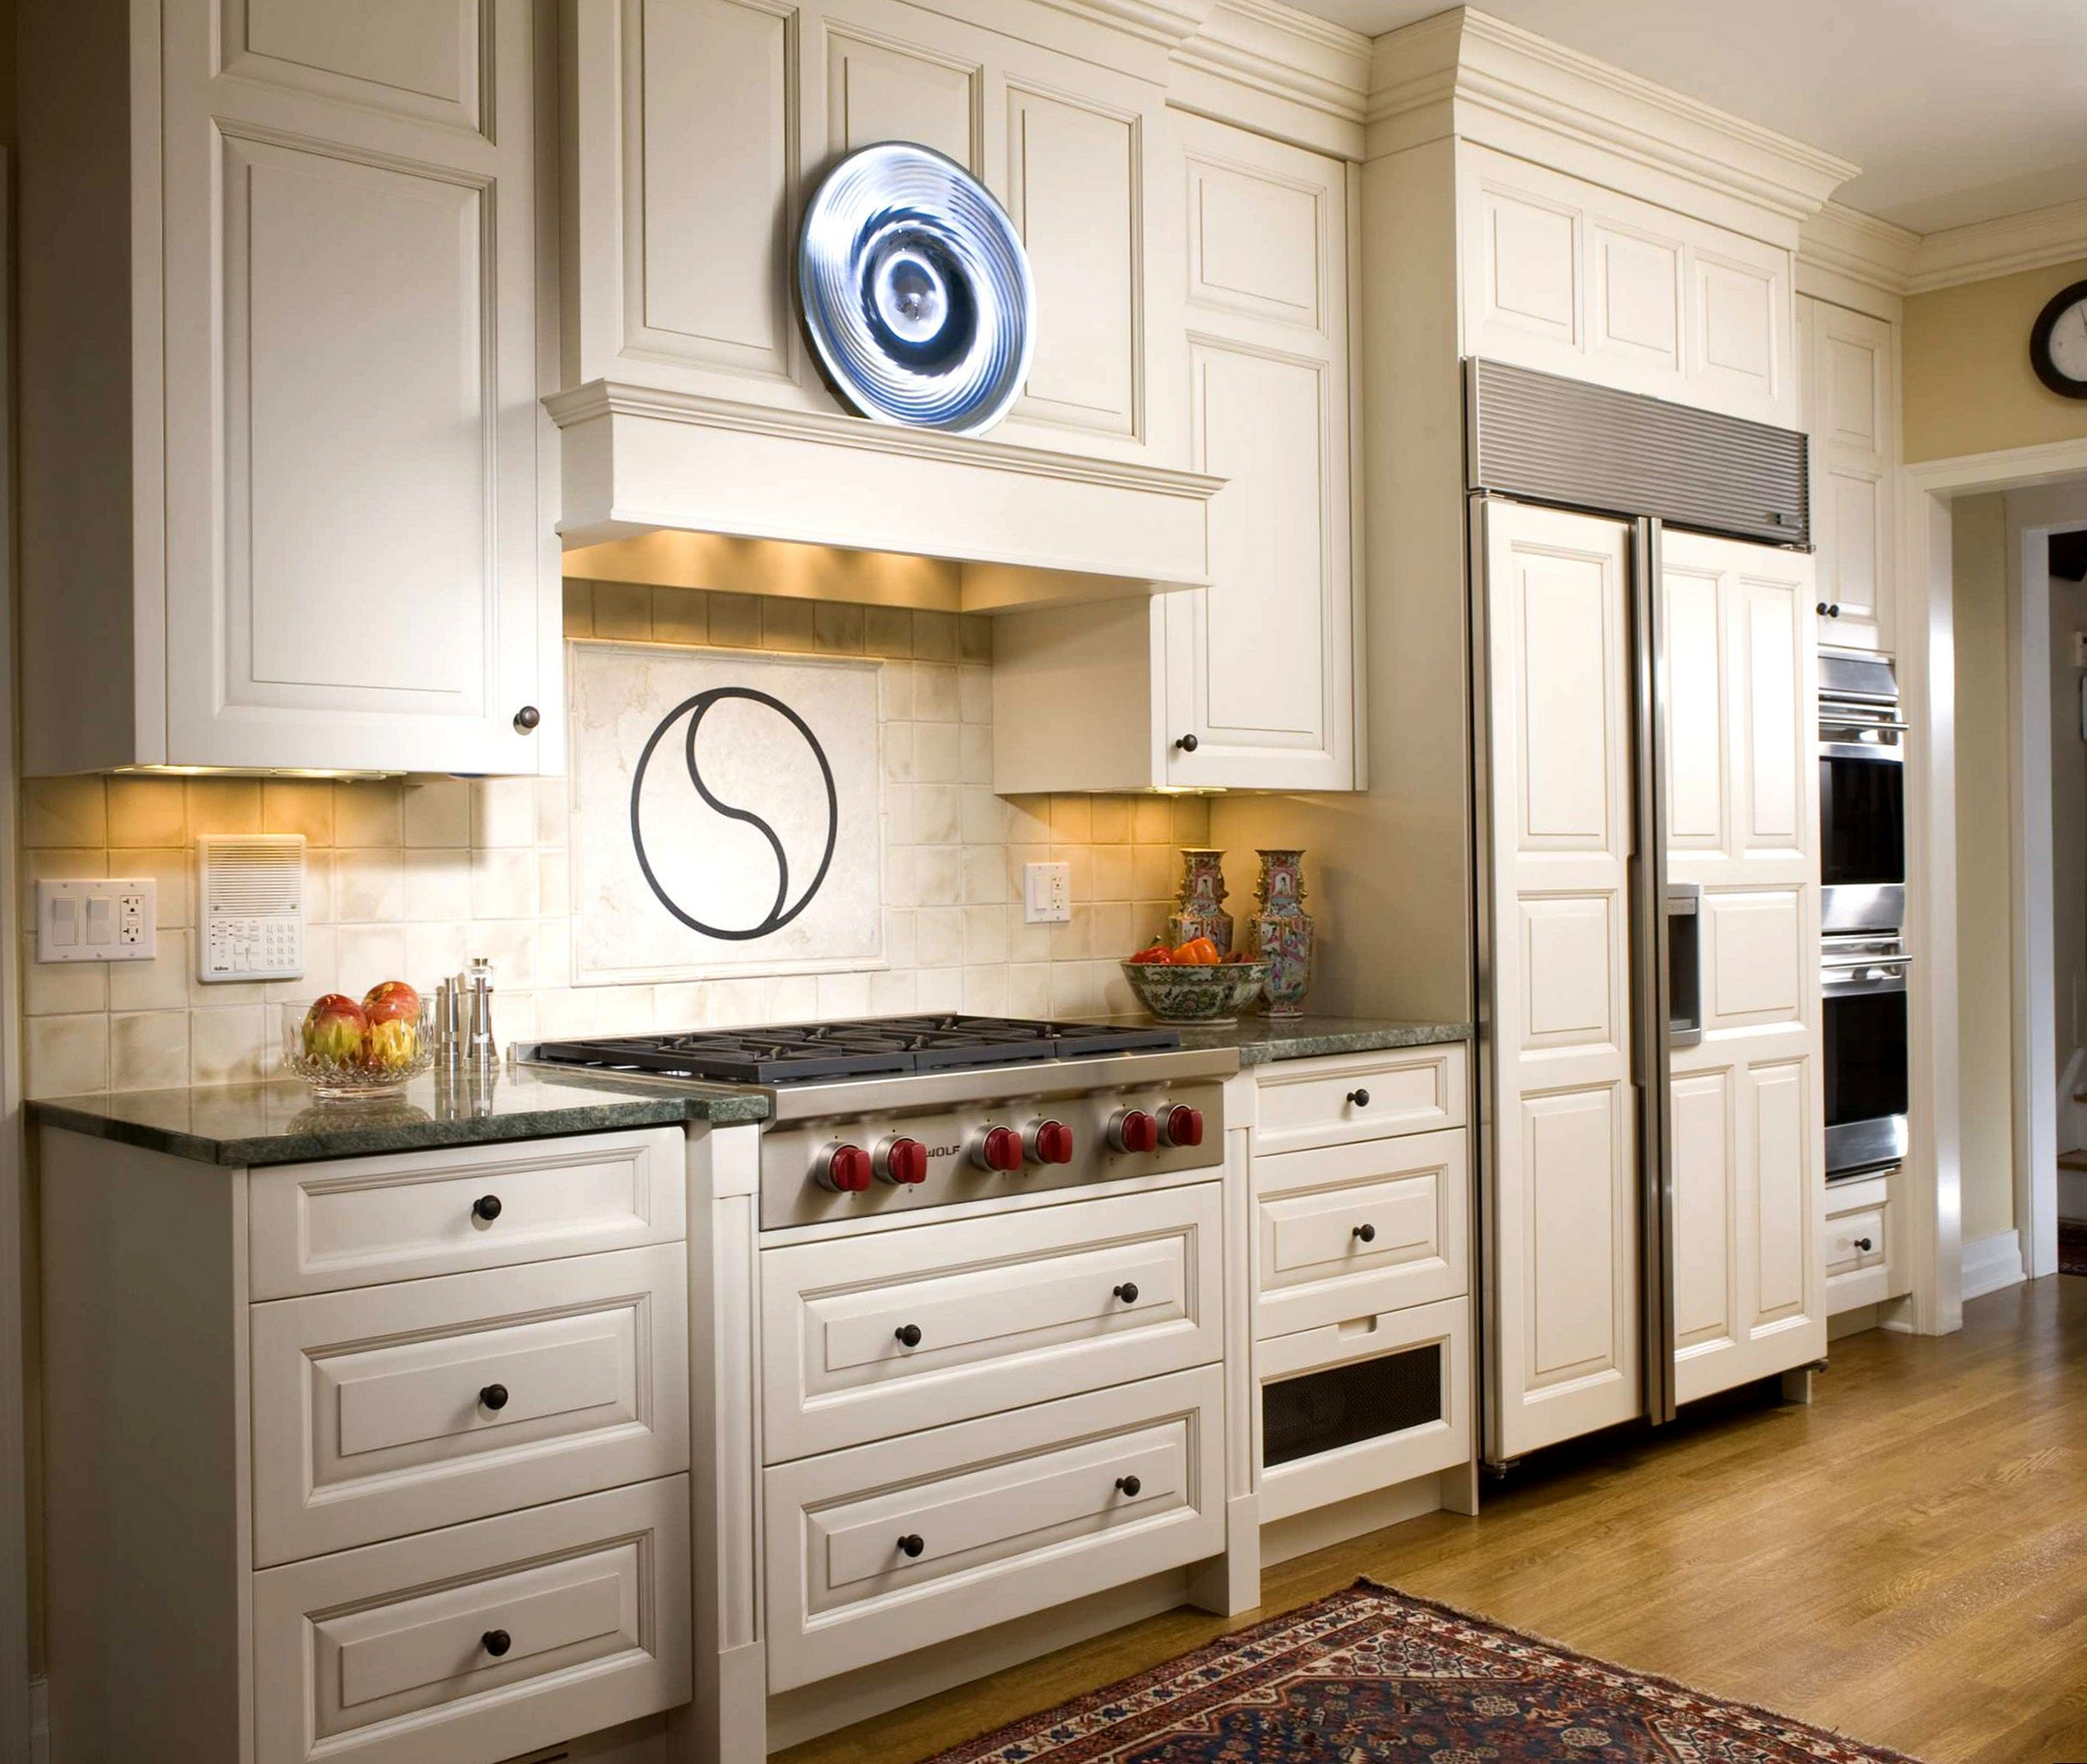 15 Simple Kitchen Cabinet Ideas That Inspire You Simple Kitchen